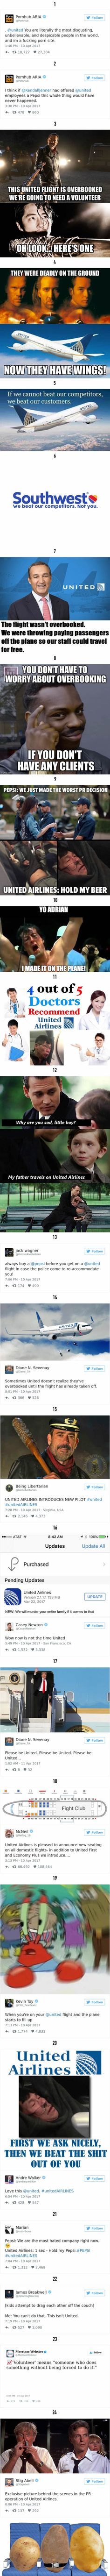 24 Hilarious Reactions To United Airlines Violently Dragging A Man Off A Plane